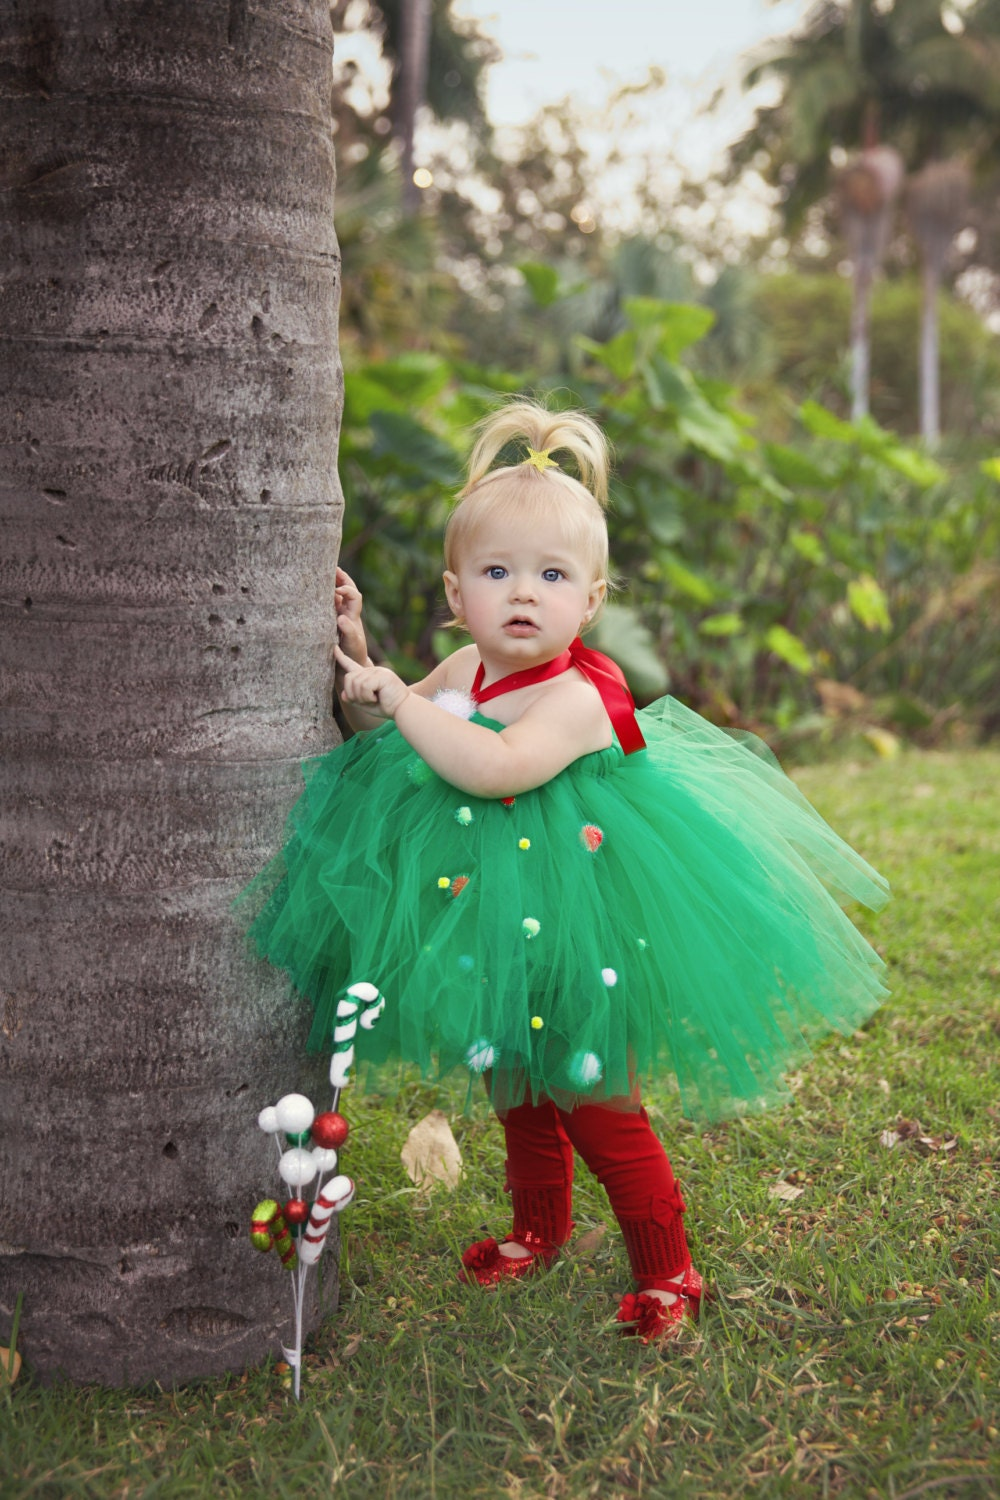 Little girls love our unique boutique girls holiday clothing including fun Easter, Halloween, Thanksgiving, and Christmas dresses, petti rompers, pettiskirts, tutu skirts & hair accessories. Our online girls clothing boutique is also a popular destination for unique girls birthday clothing including cute dresses, tutus, chiffon pettiskirts.